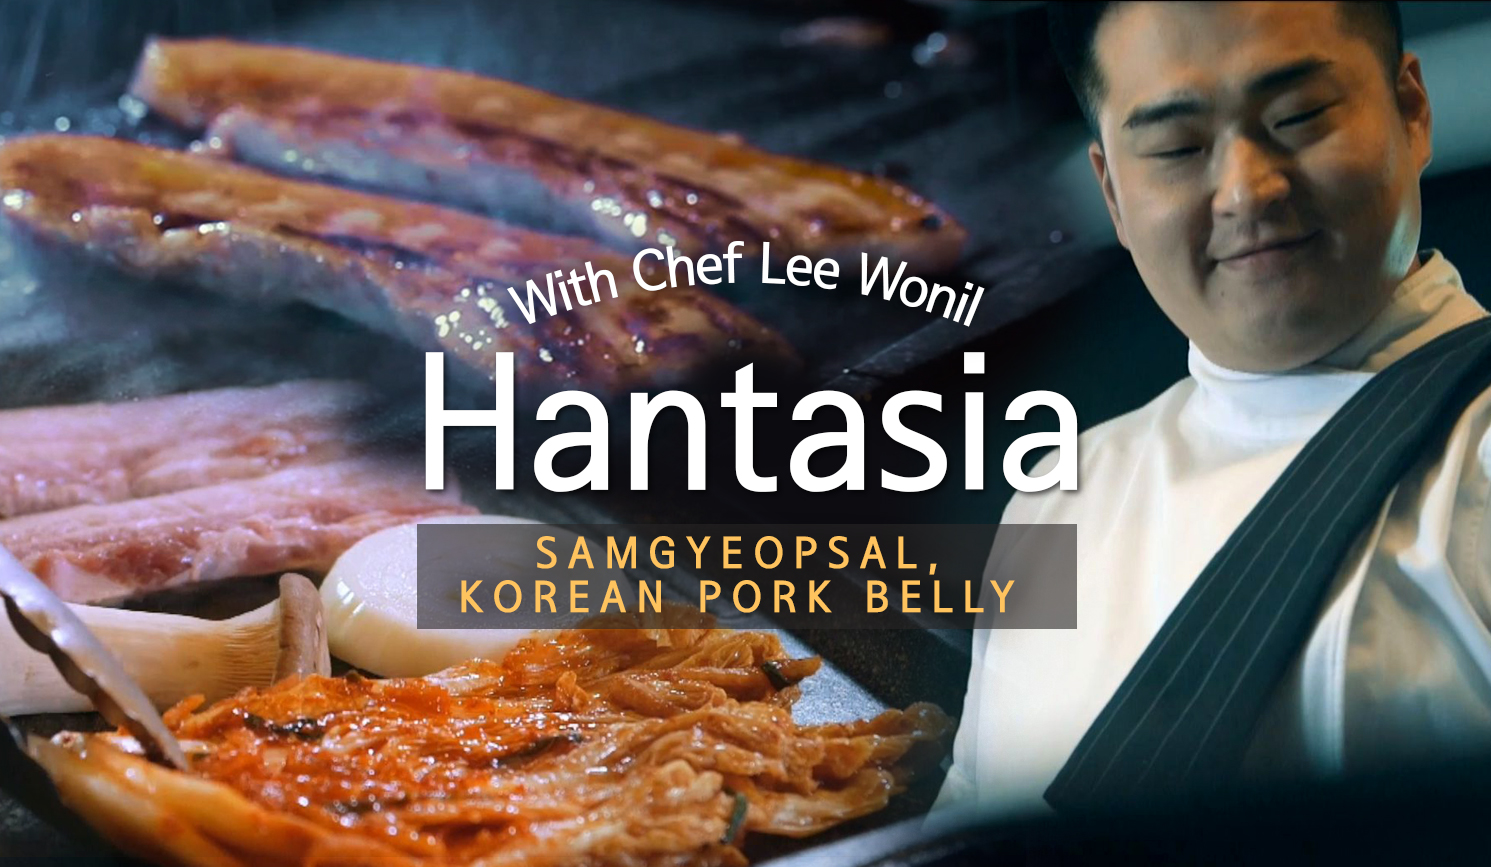 [Hantasia] Samgyeopsal, Korean Pork Belly (with Chef Lee Wonil)